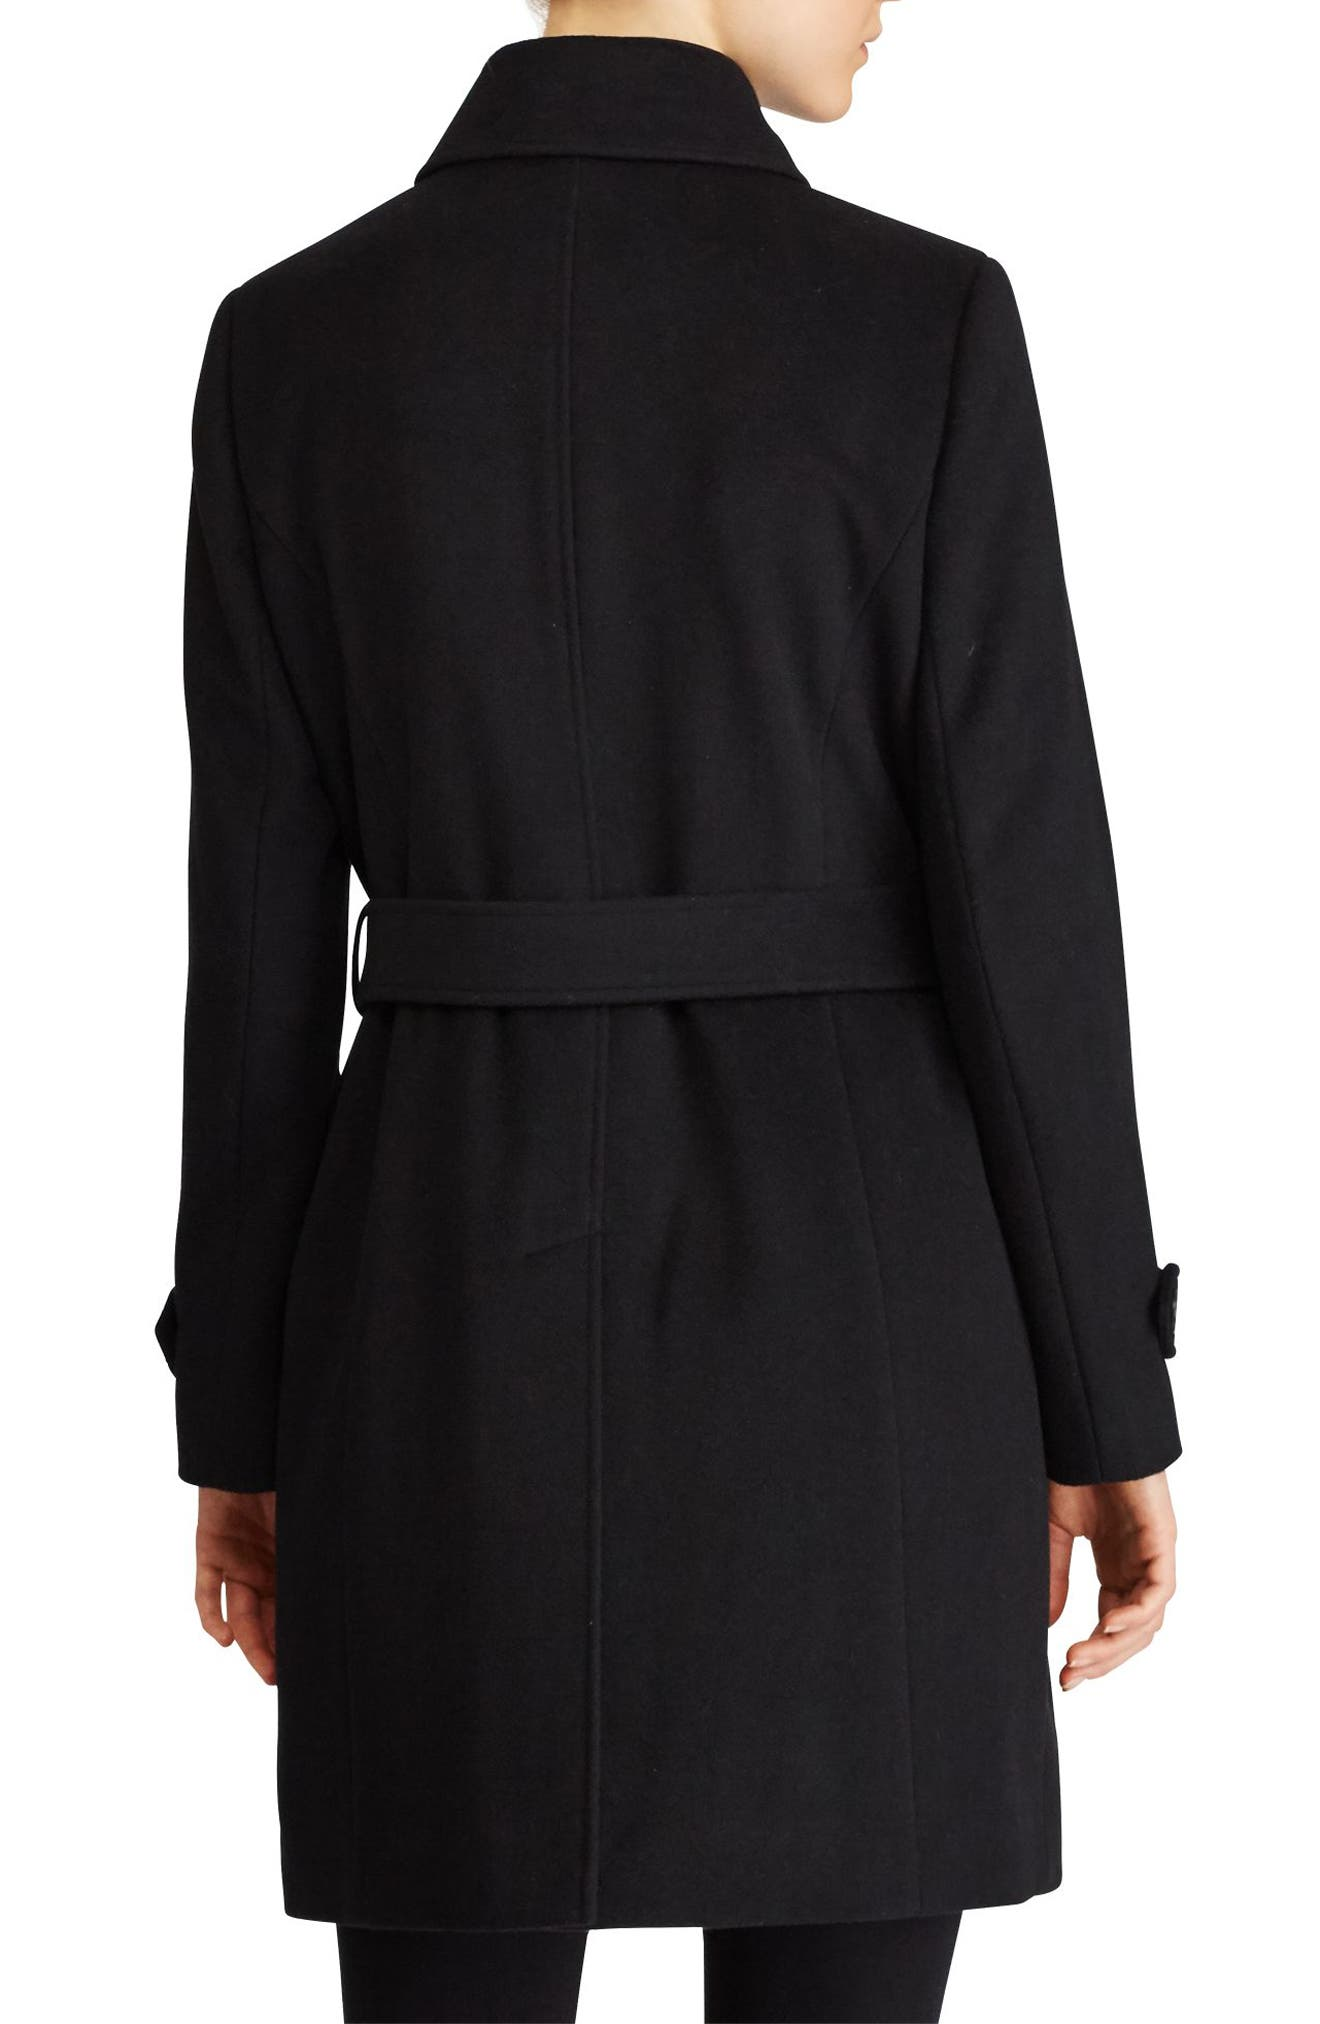 Wool Blend Trench Coat,                             Alternate thumbnail 4, color,